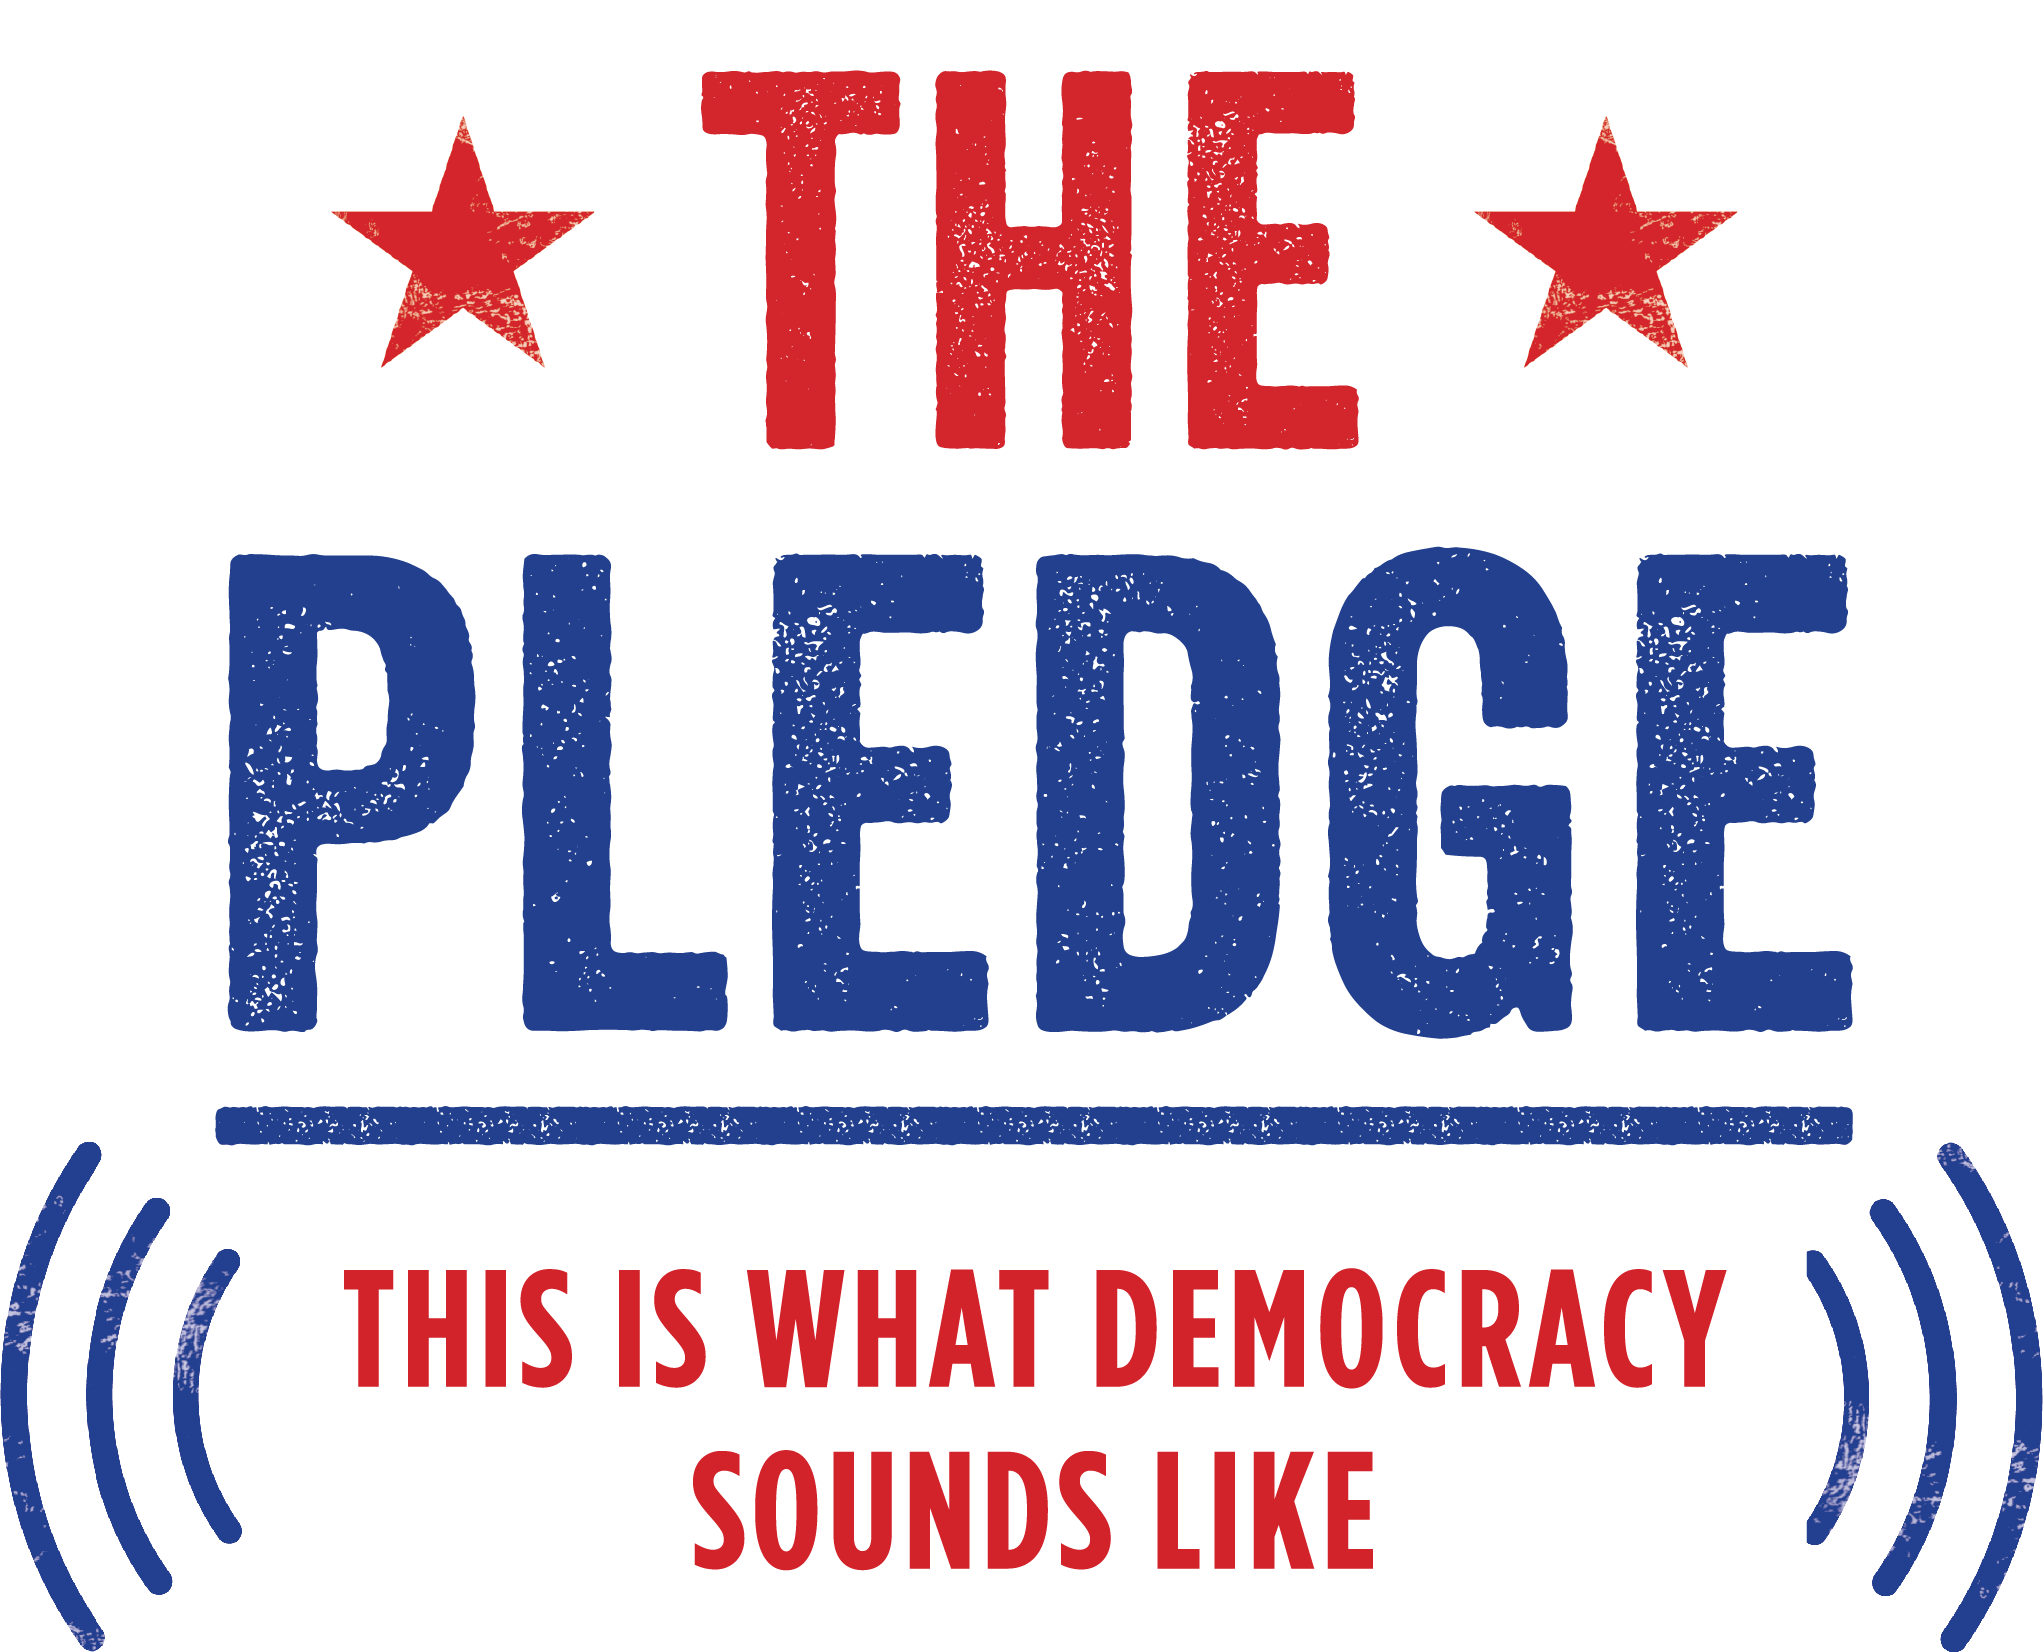 Episode 9: I love it here - and I'm not leaving! - The Pledge asks people on the street about their pledges to work for our democracy. We also bring you an update on plans for Season Two!